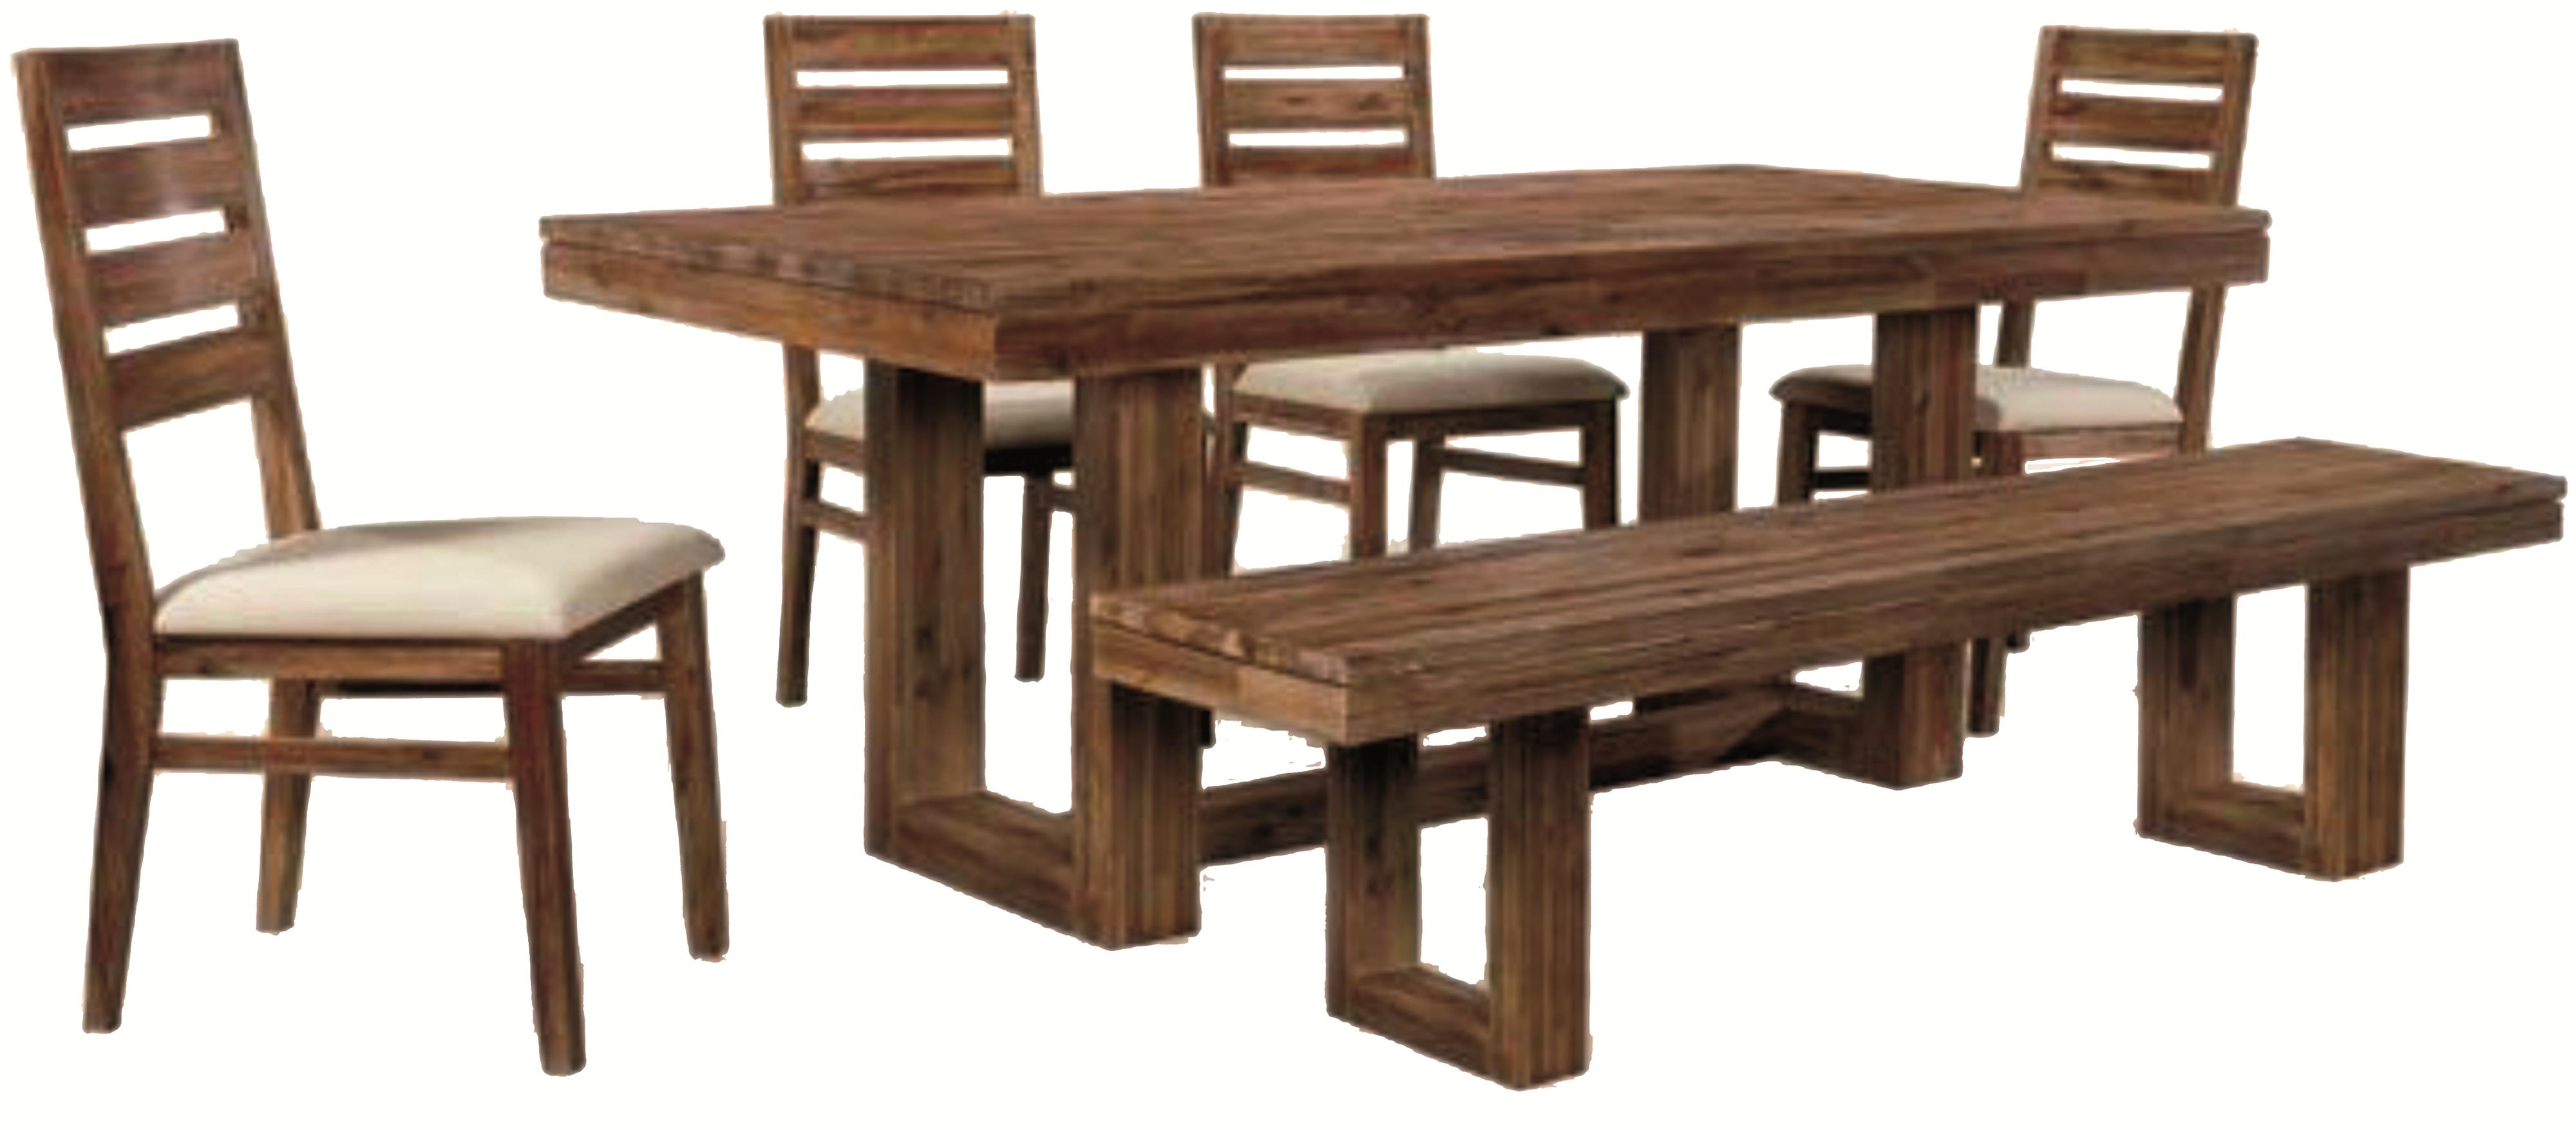 Six Piece Modern Rustic Rectangular Trestle Table With